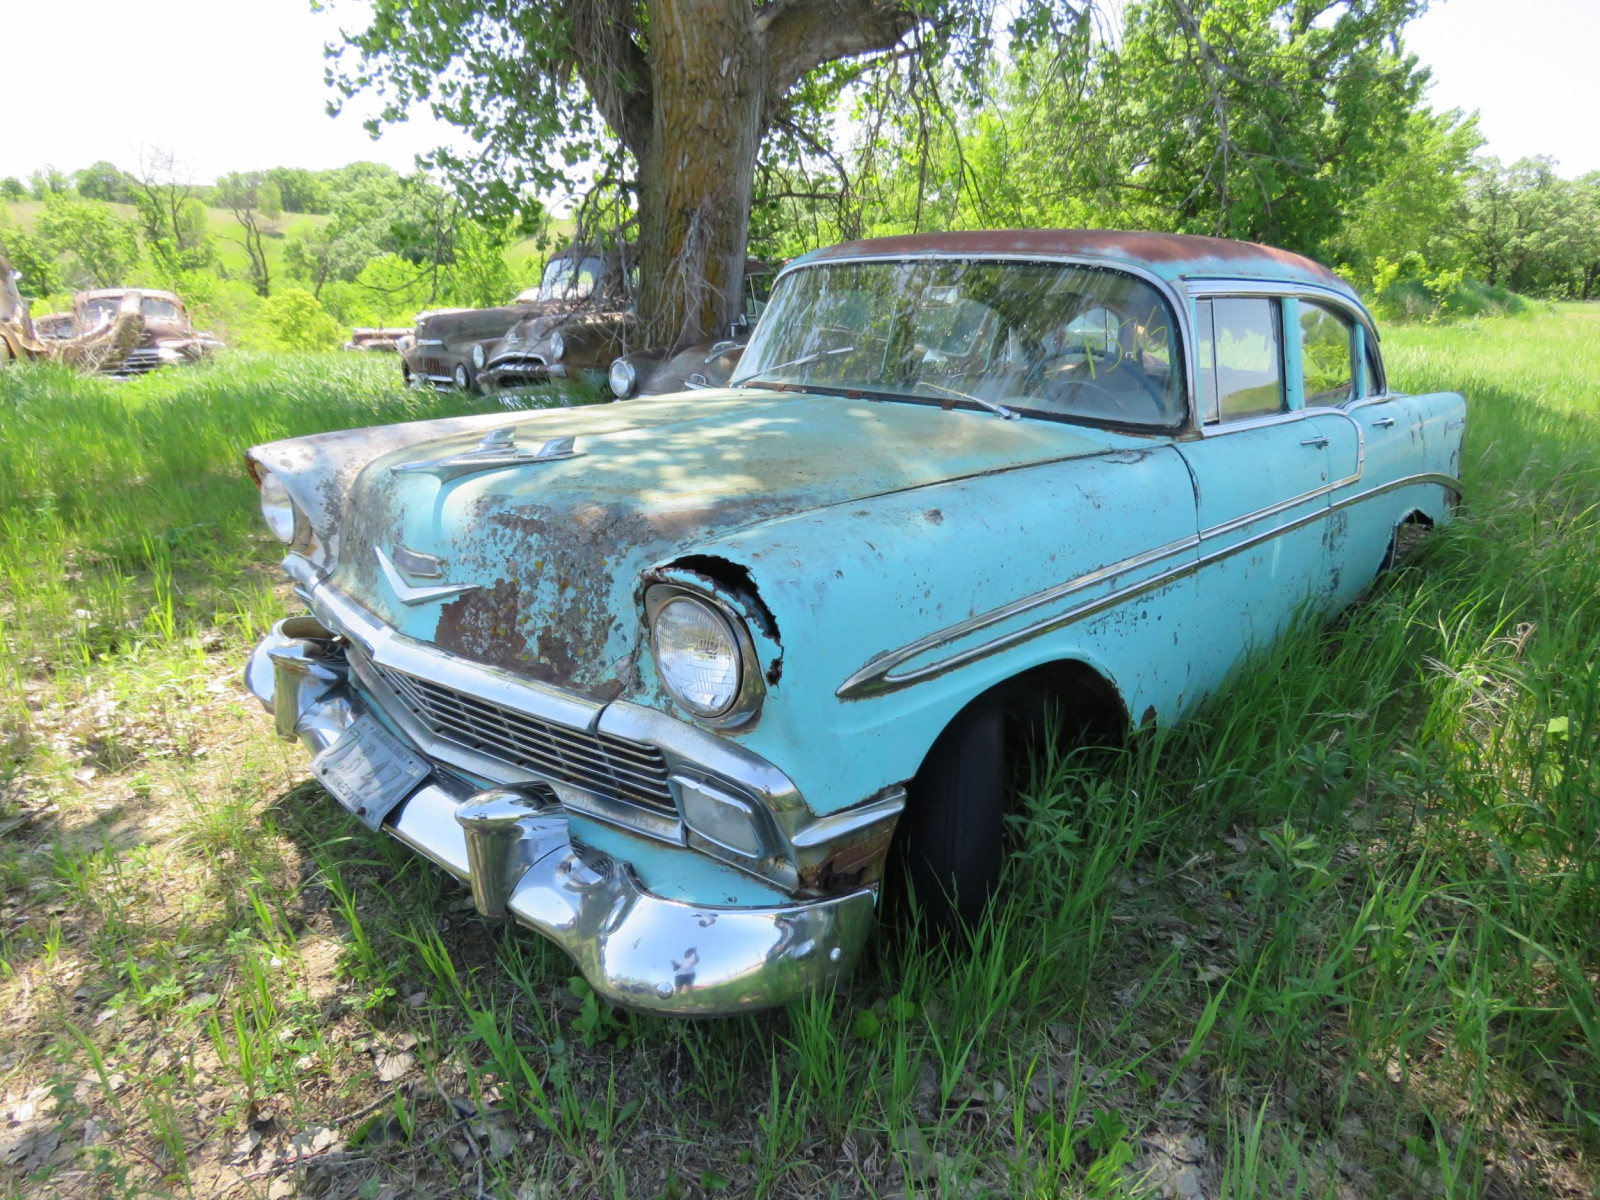 1956 Chevrolet Belair 4dr Sedan for Project or parts VC56J080987 - Image 1